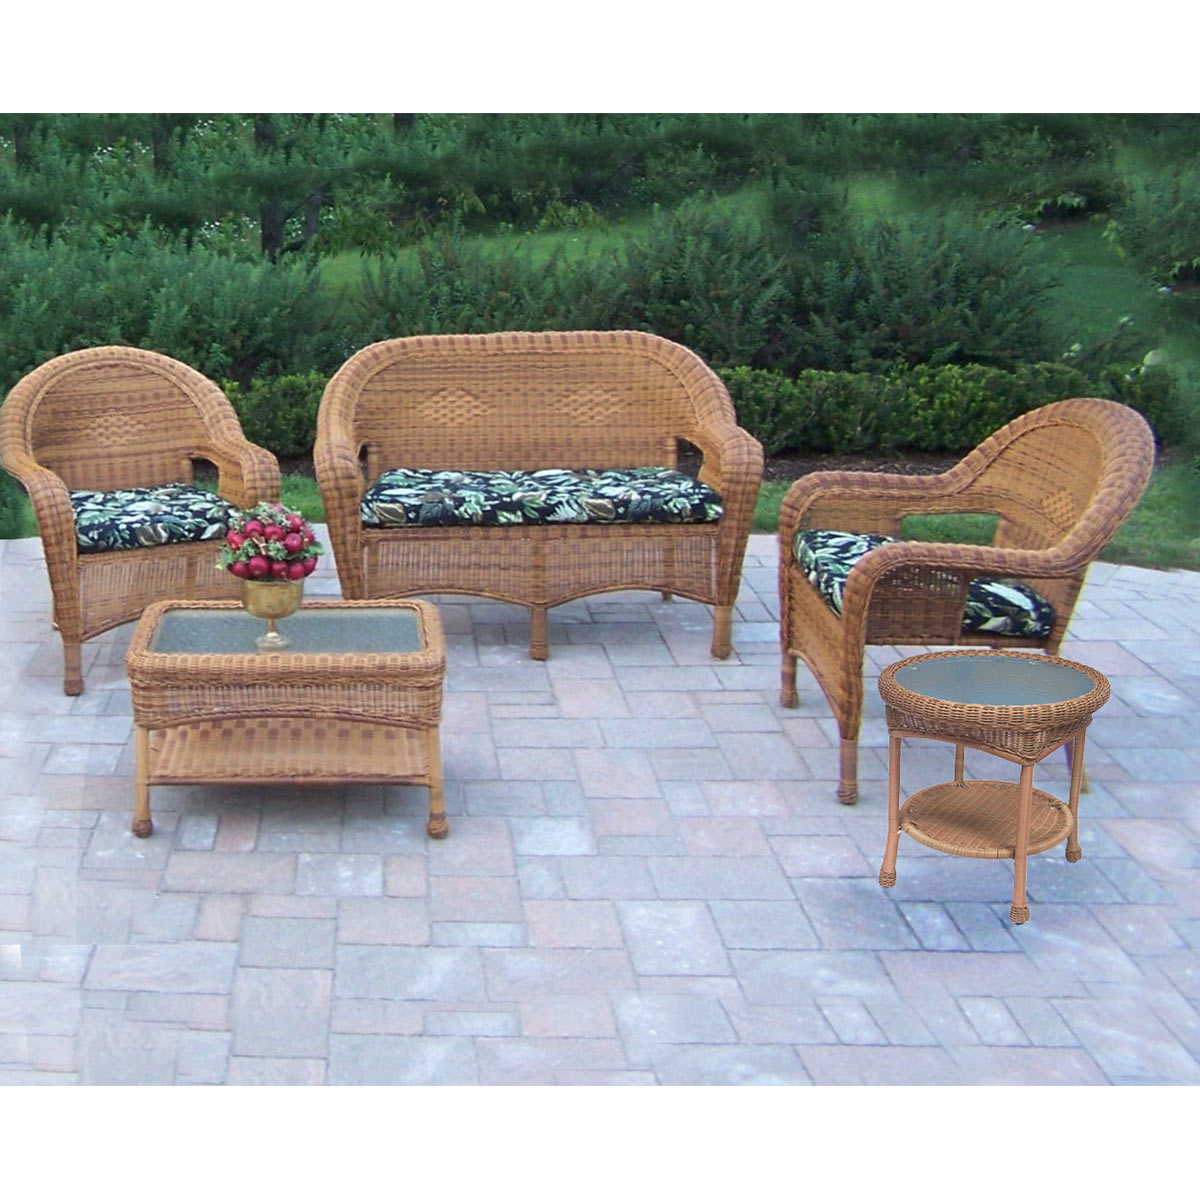 Oakland Living Resin Wicker 5 Pc Seating Set With